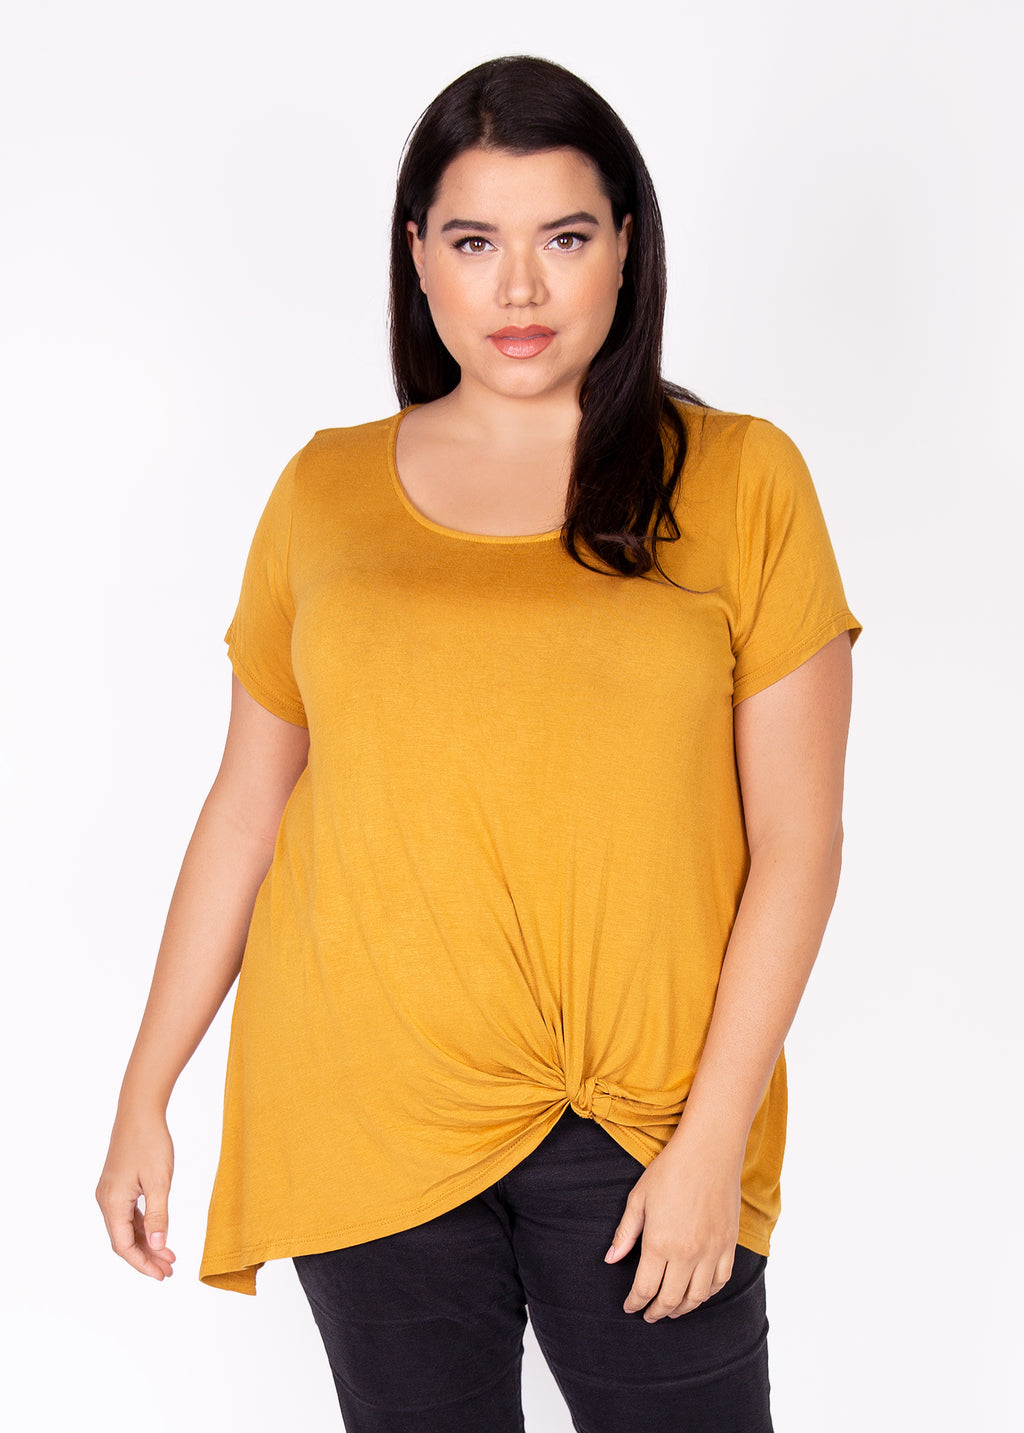 Nerine Tee in Solid Colors